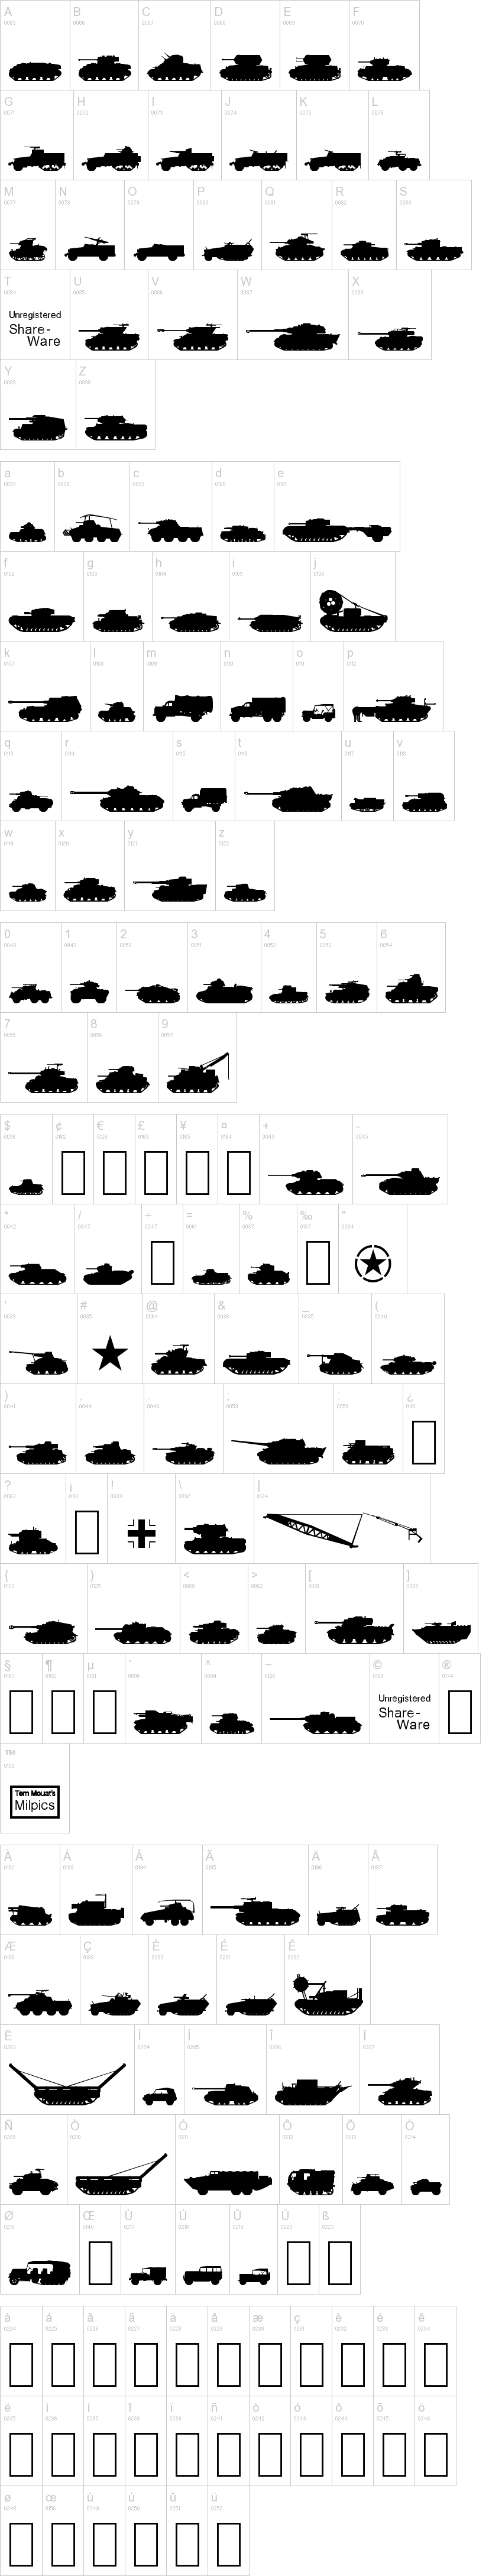 Tanks WW2